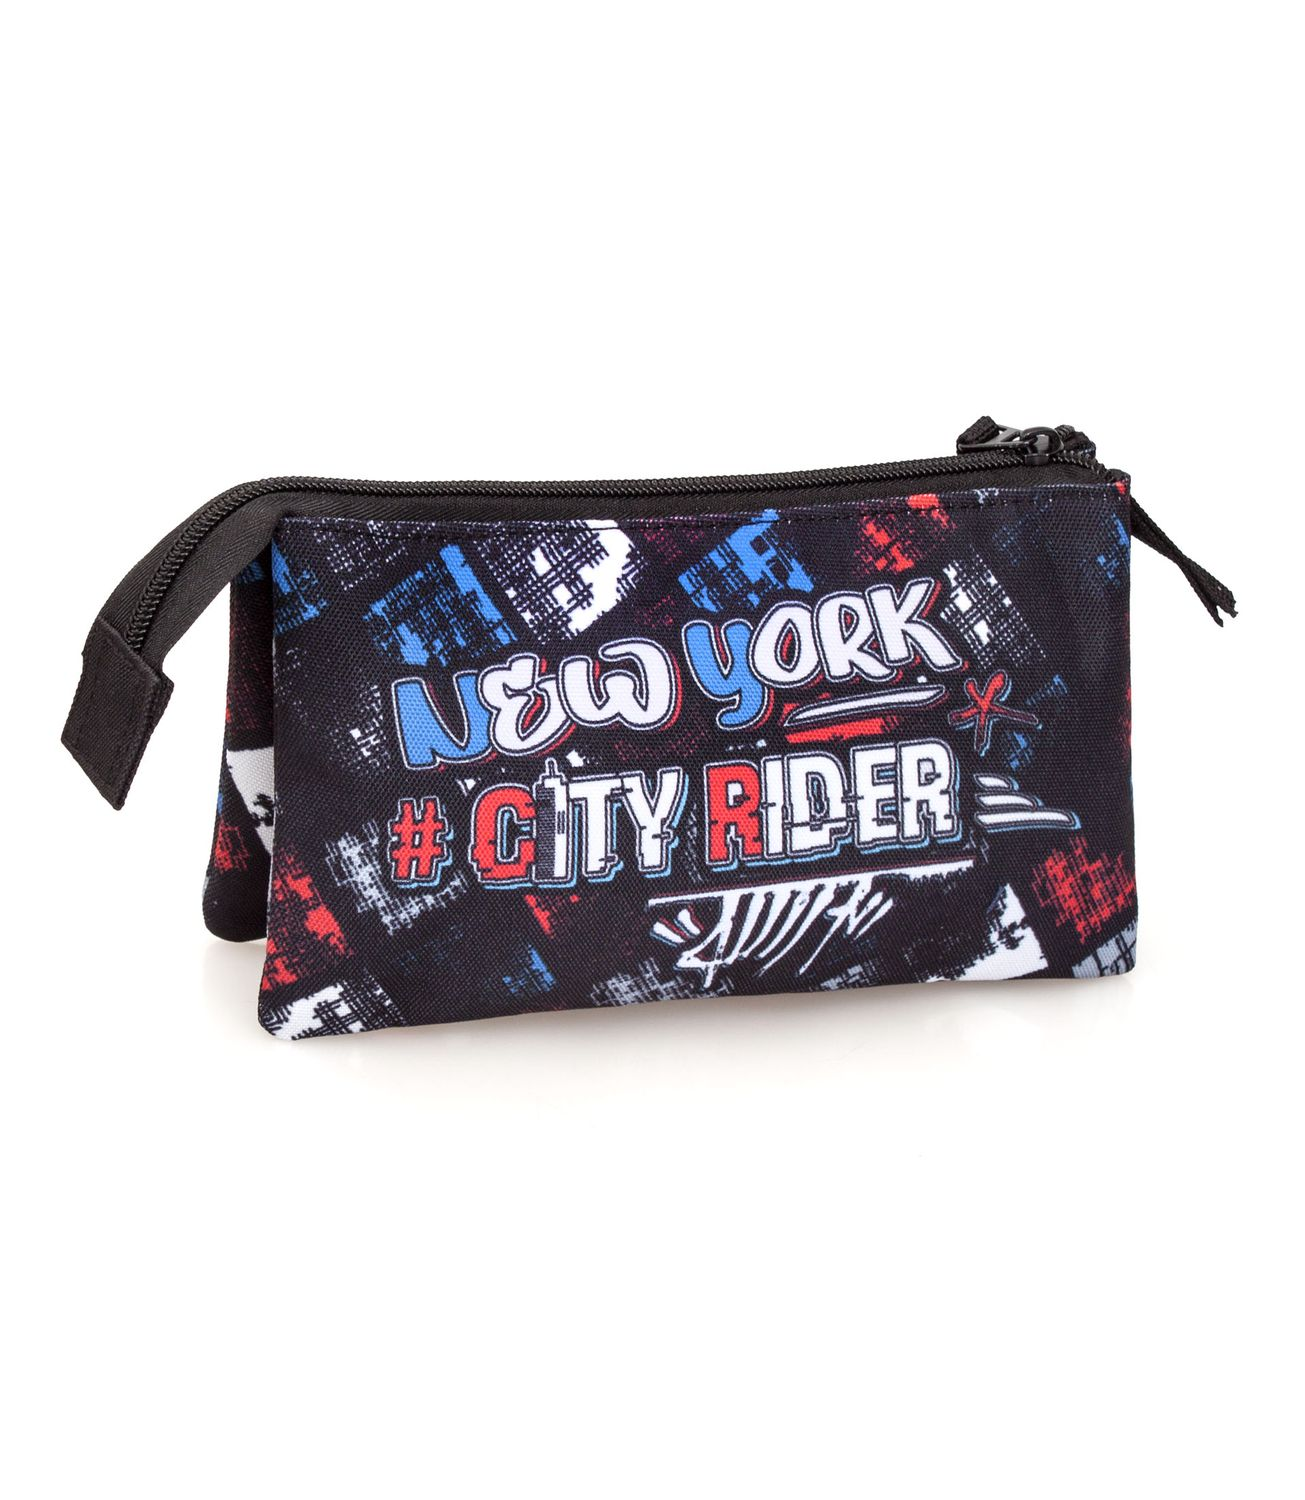 Delbag BIKE CITY RIDER Triple Pencil Case – image 2